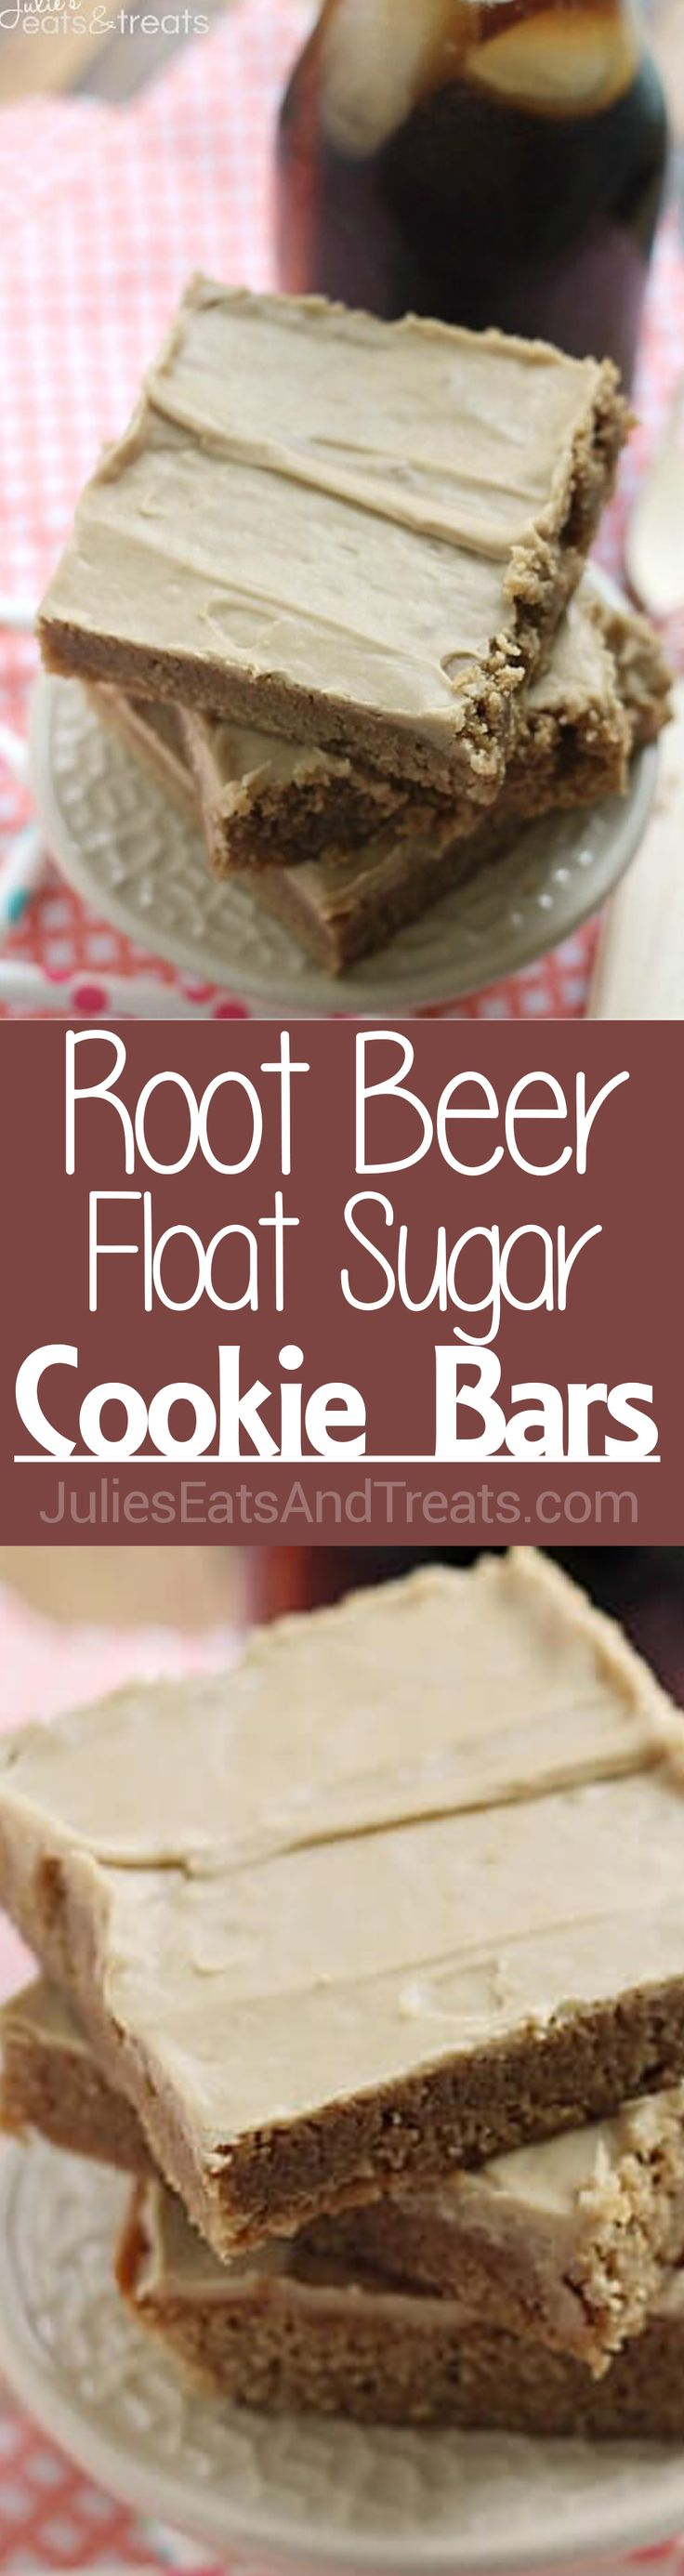 Root Beer Sugar Cookie Bars ~ Soft, Chewy Sugar Cookie Bars that Taste Like a Root Beer Barrel!  via @julieseats